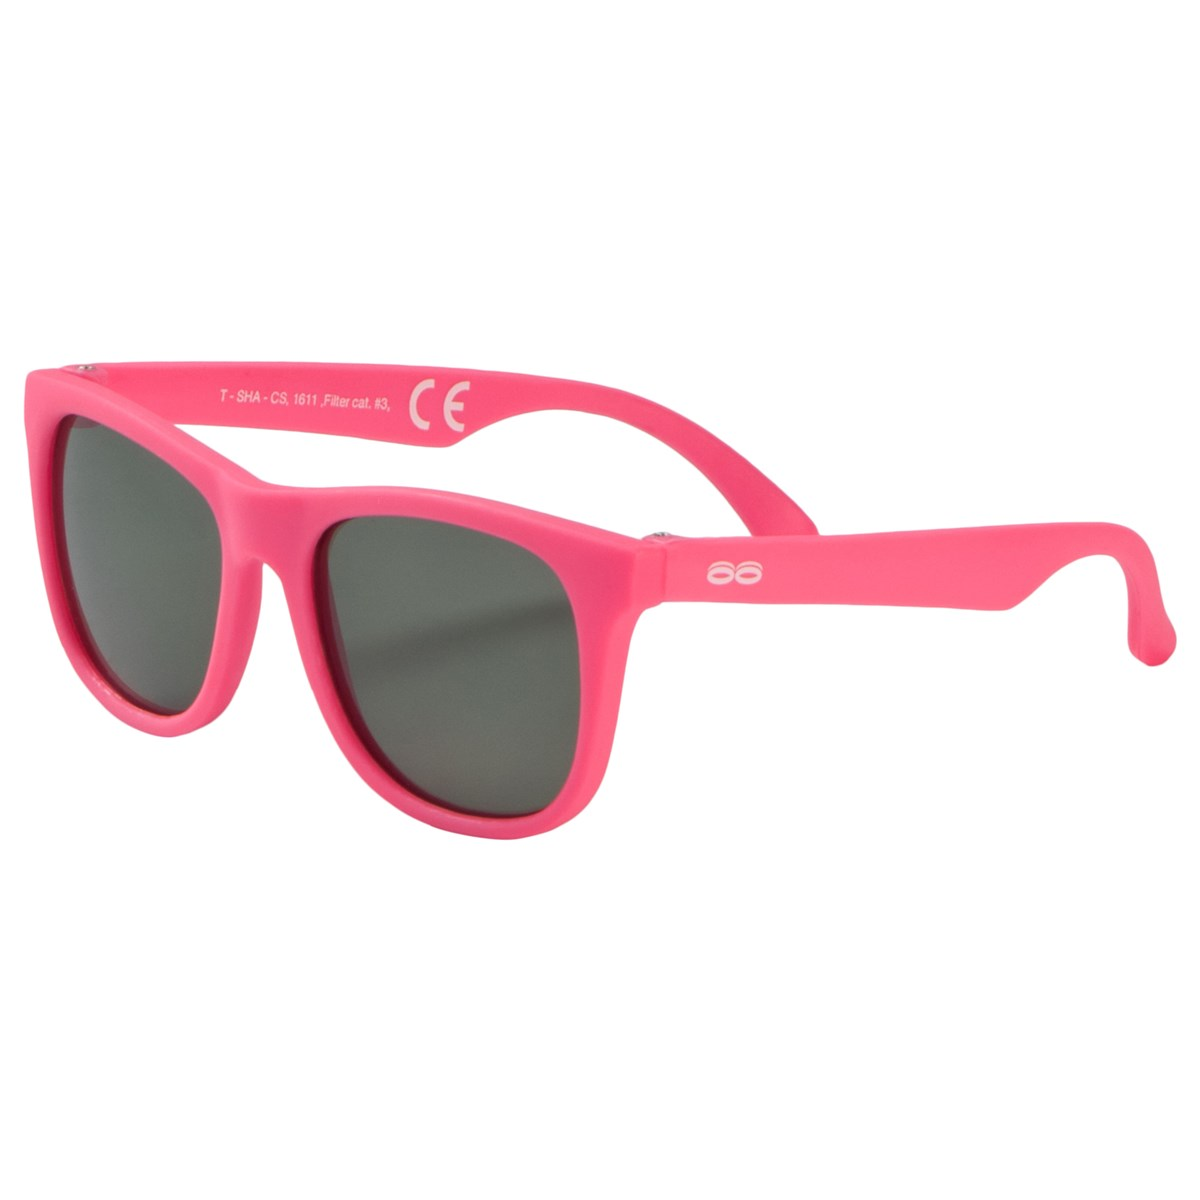 TOOTINY Girls Sunglasses